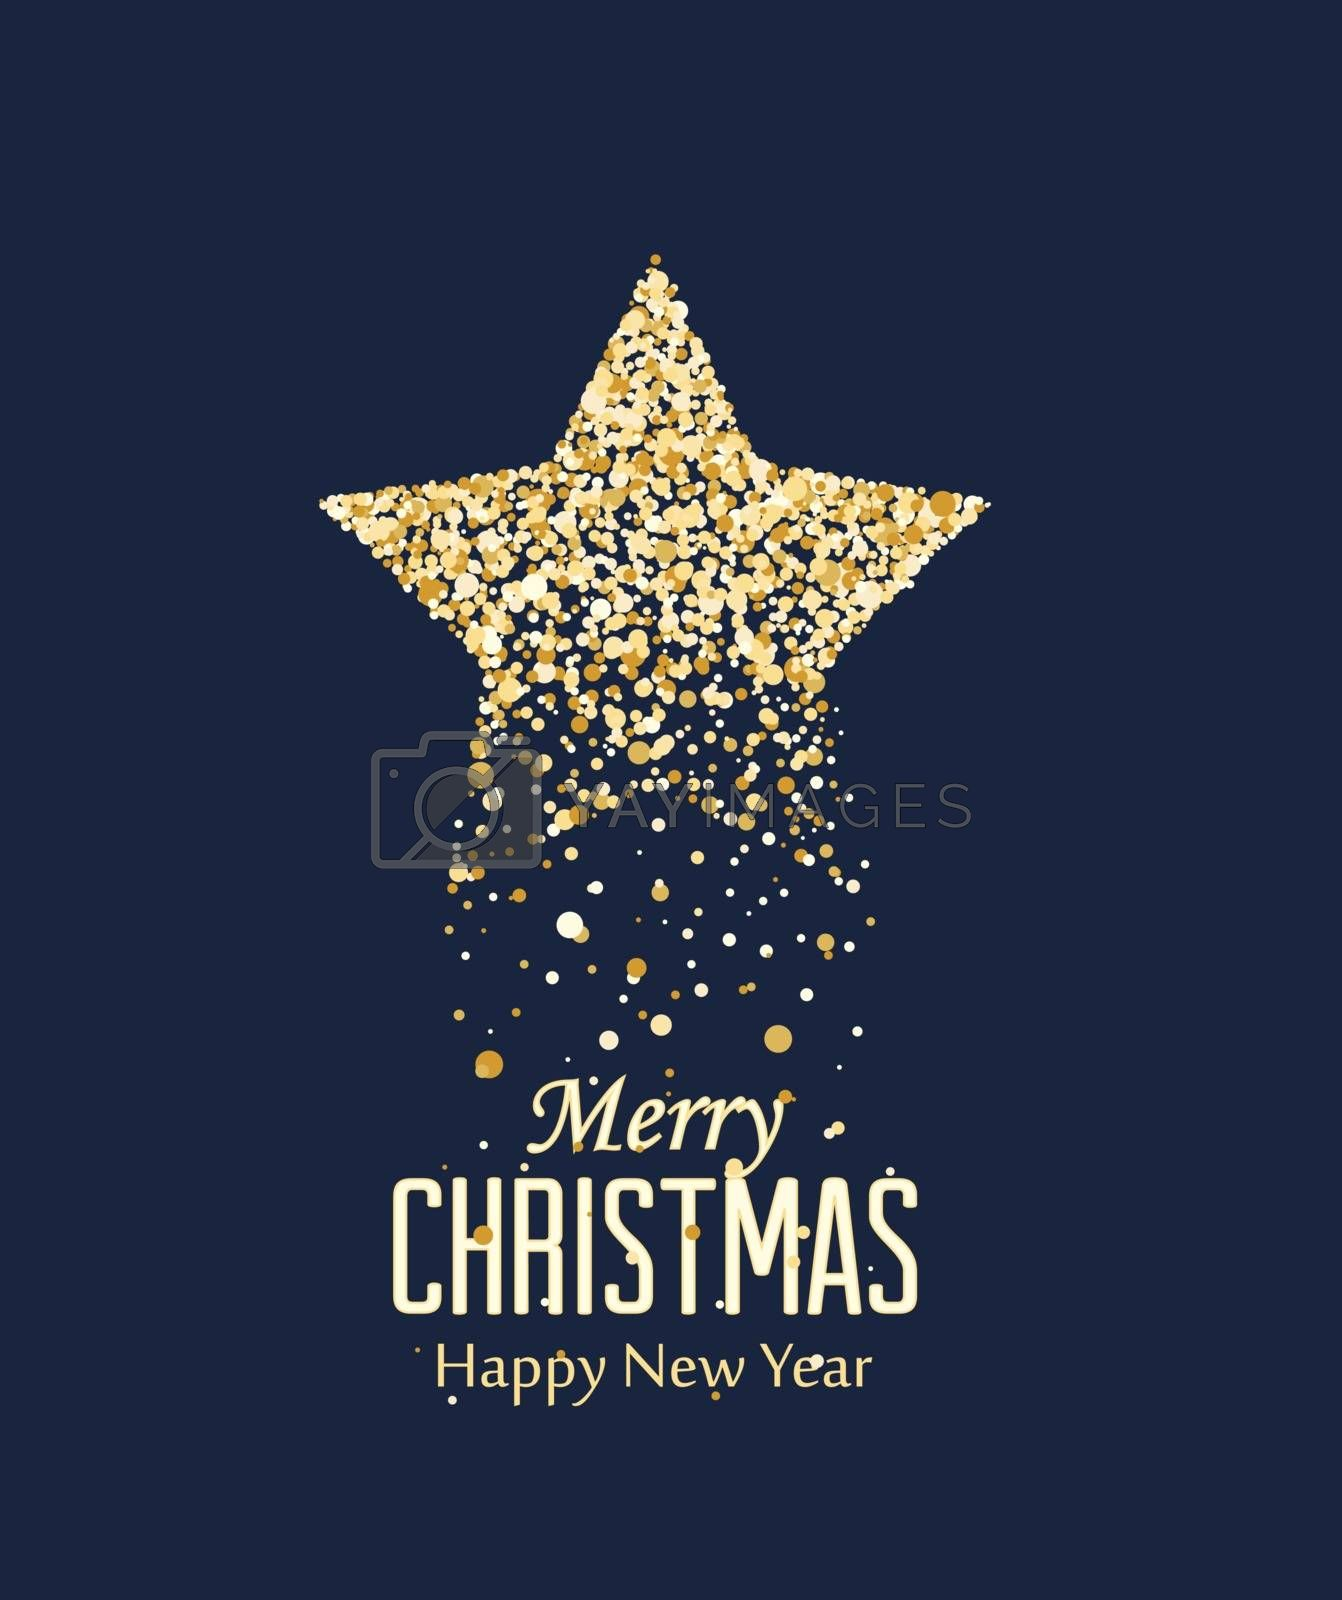 Vector illustration Christmas star with dots. Merry Christmas card